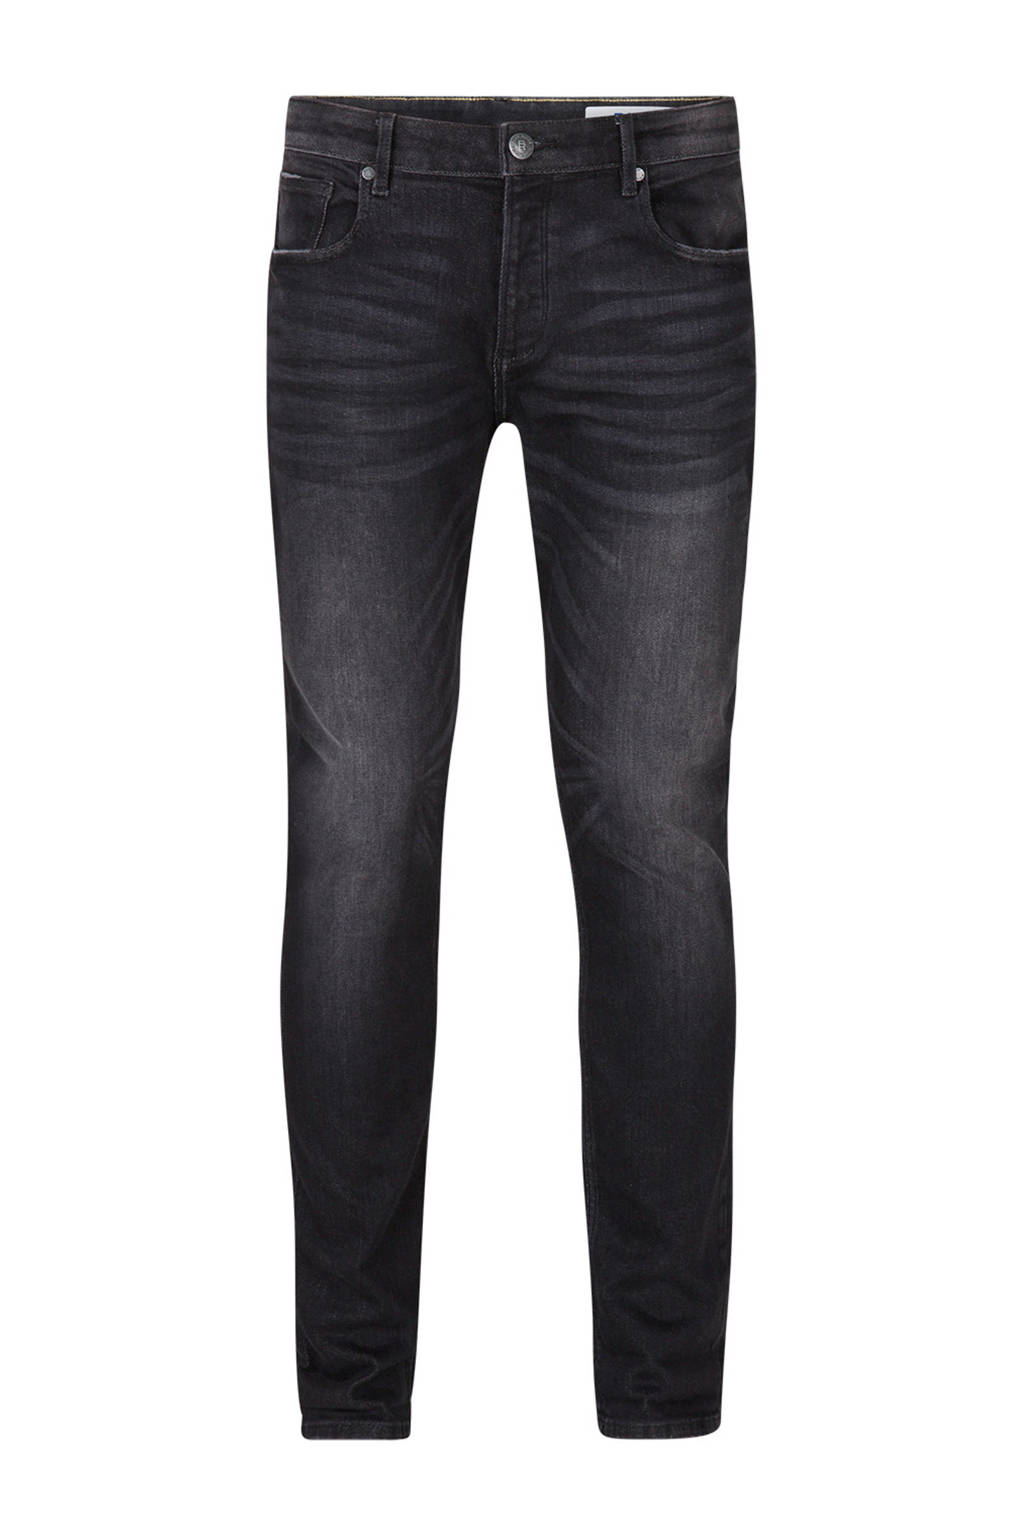 WE Fashion Blue Ridge slim fit jog denim, Black denim